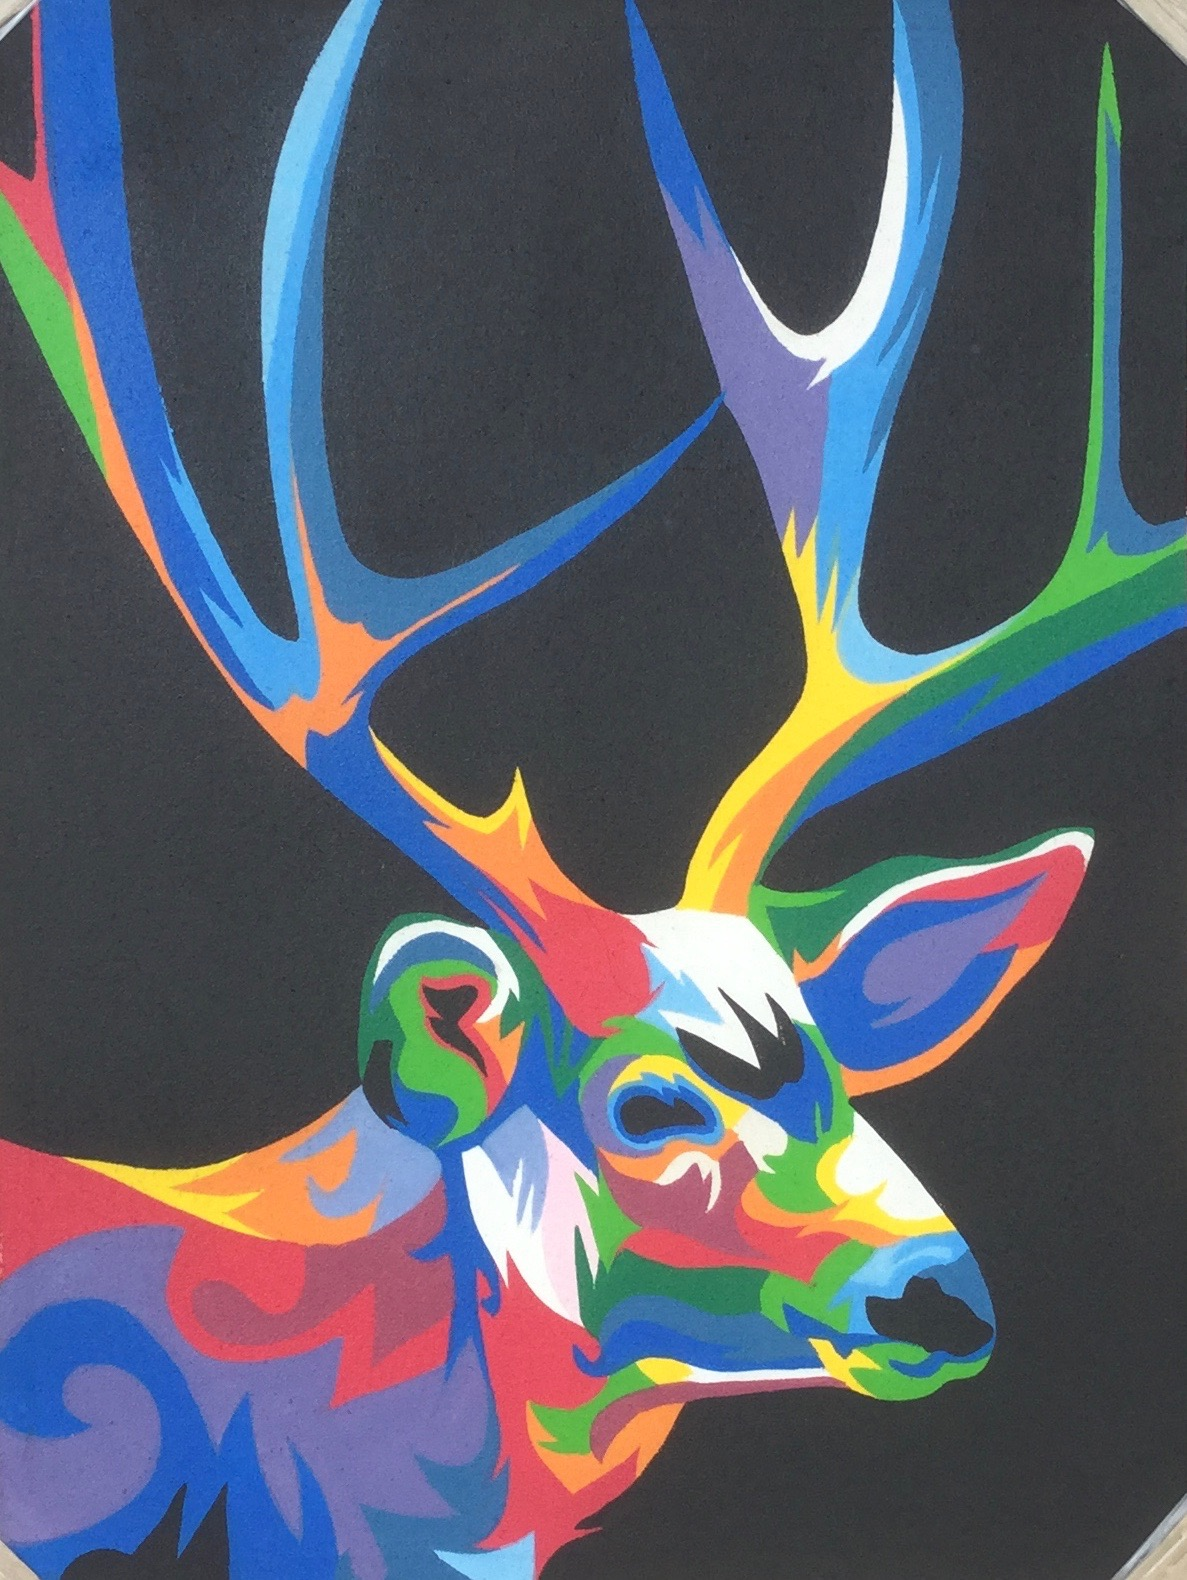 colorful animal painting 7090cap004 公式 goes windy dream